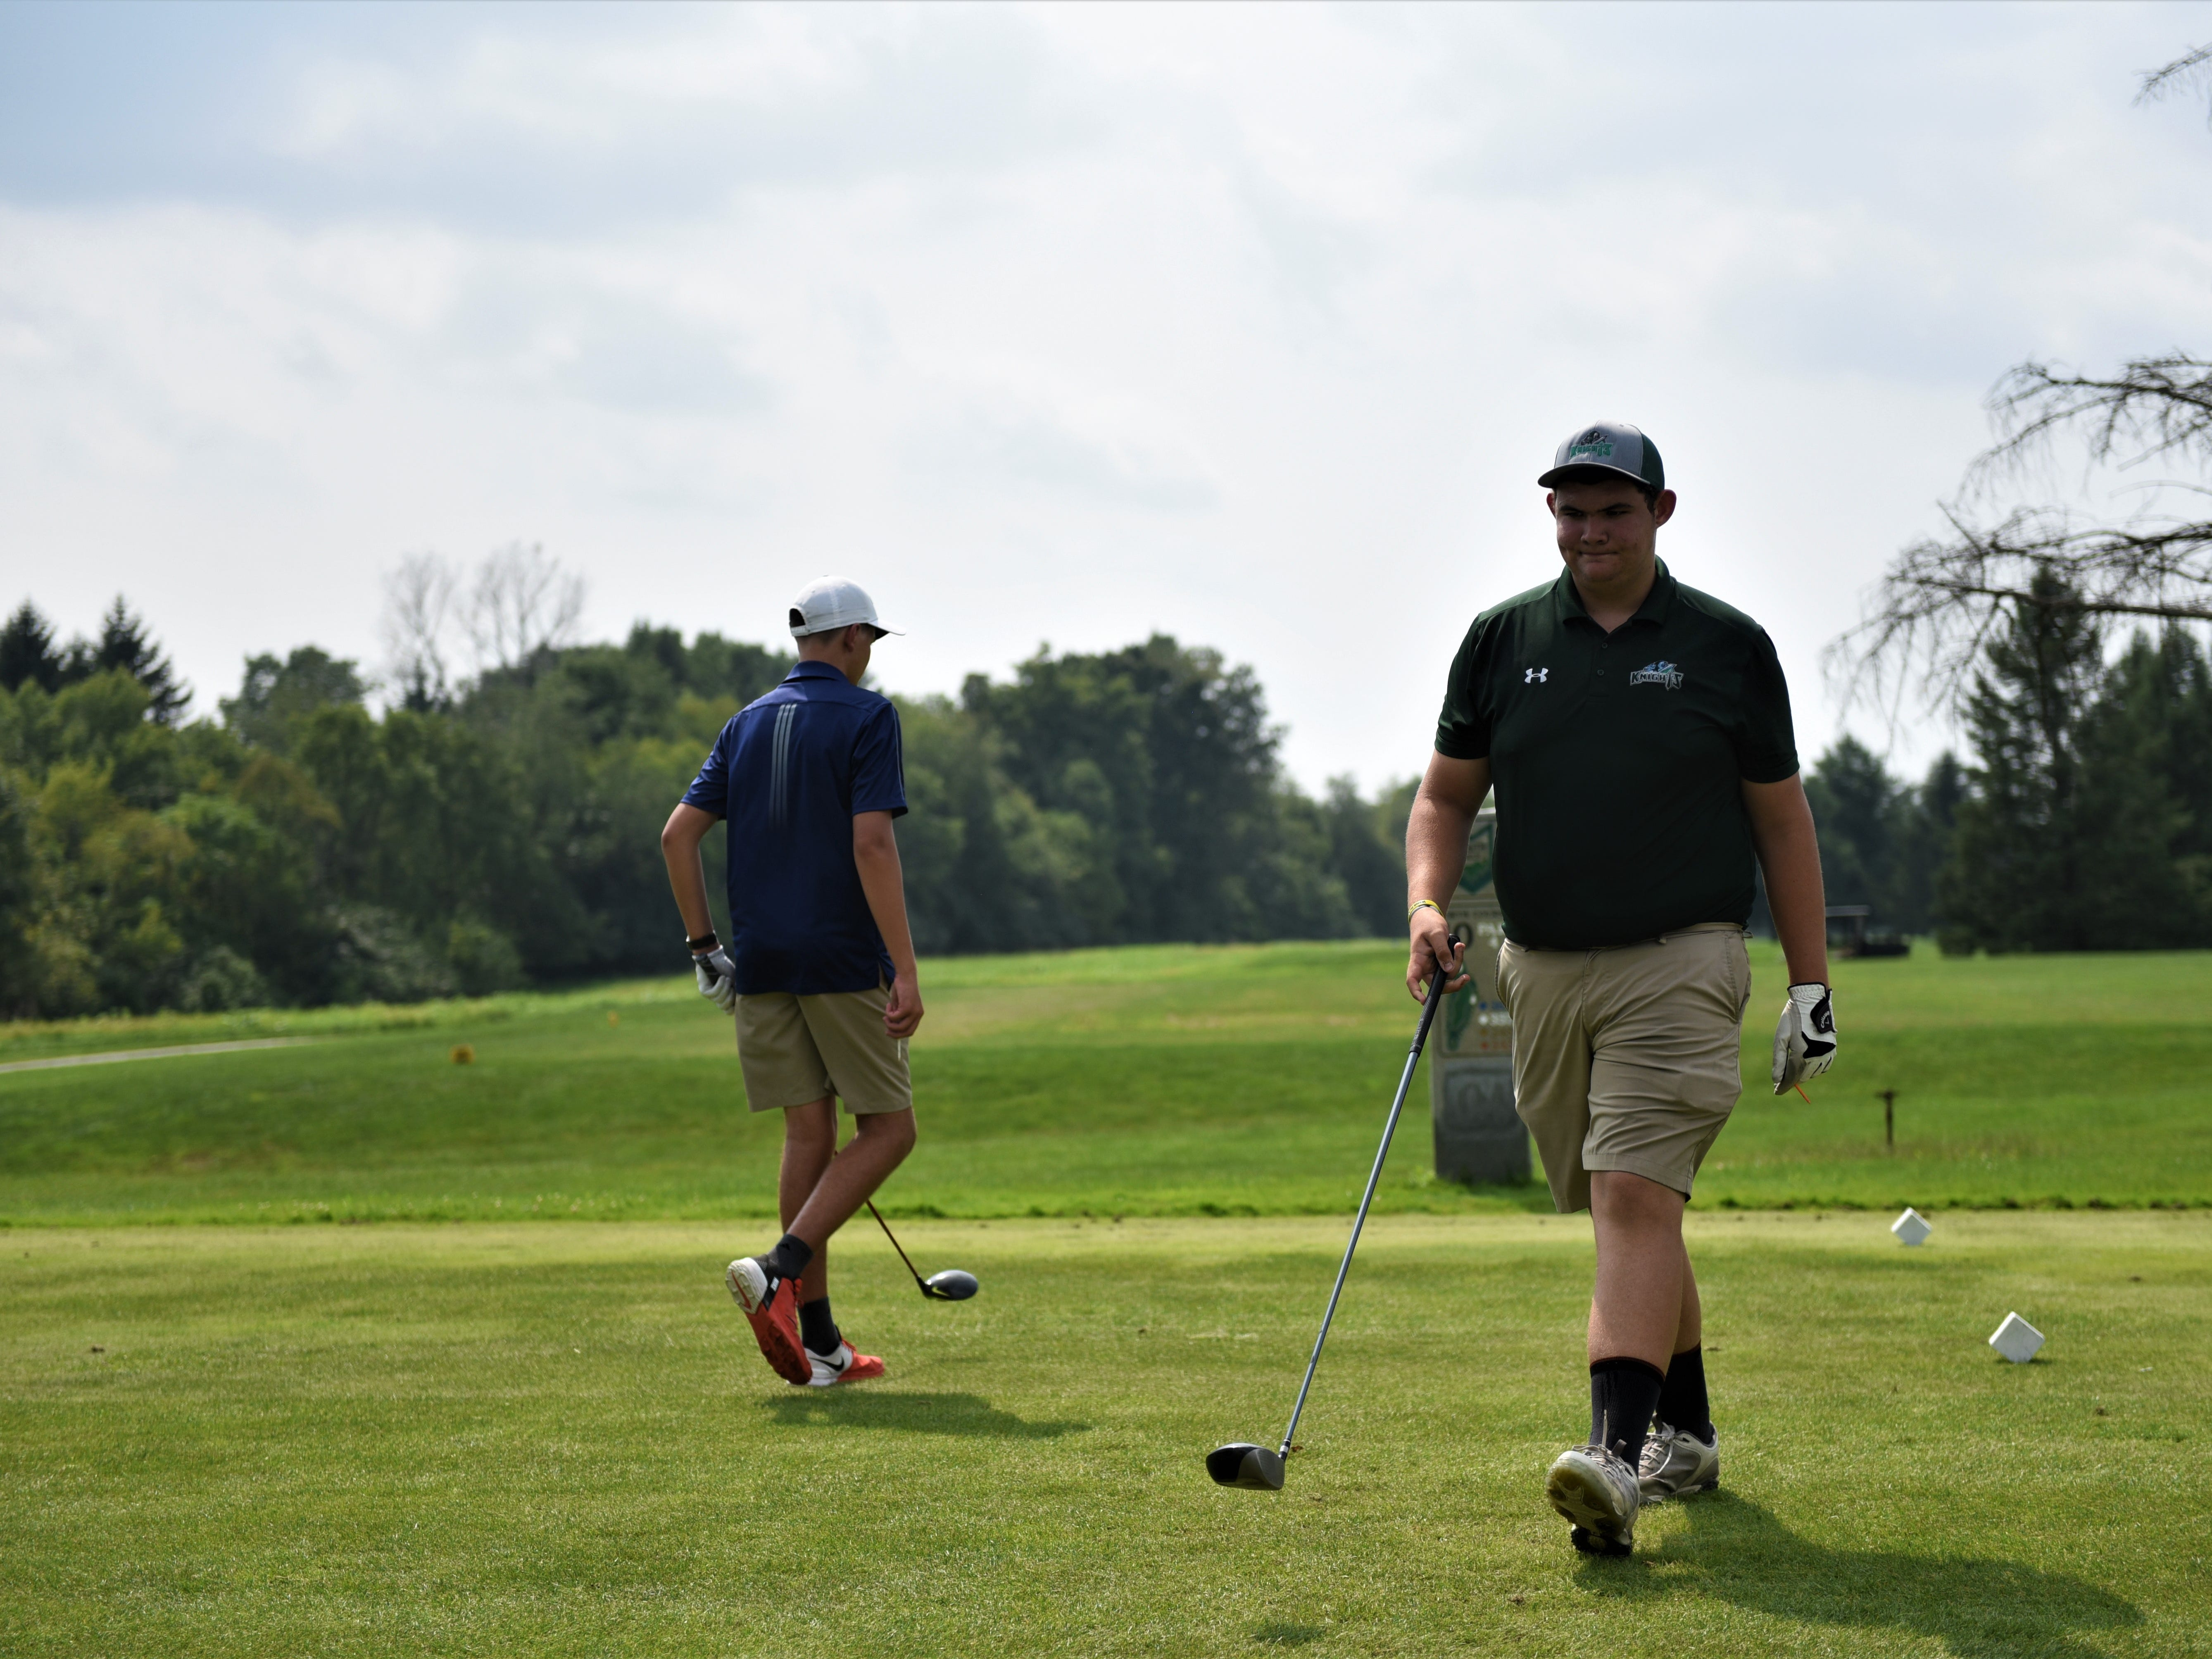 Fairfield golfer Greg Gripe walks off after teeing off during the Division III golf match at the South Hills Golf Course on Aug. 27, 2018.